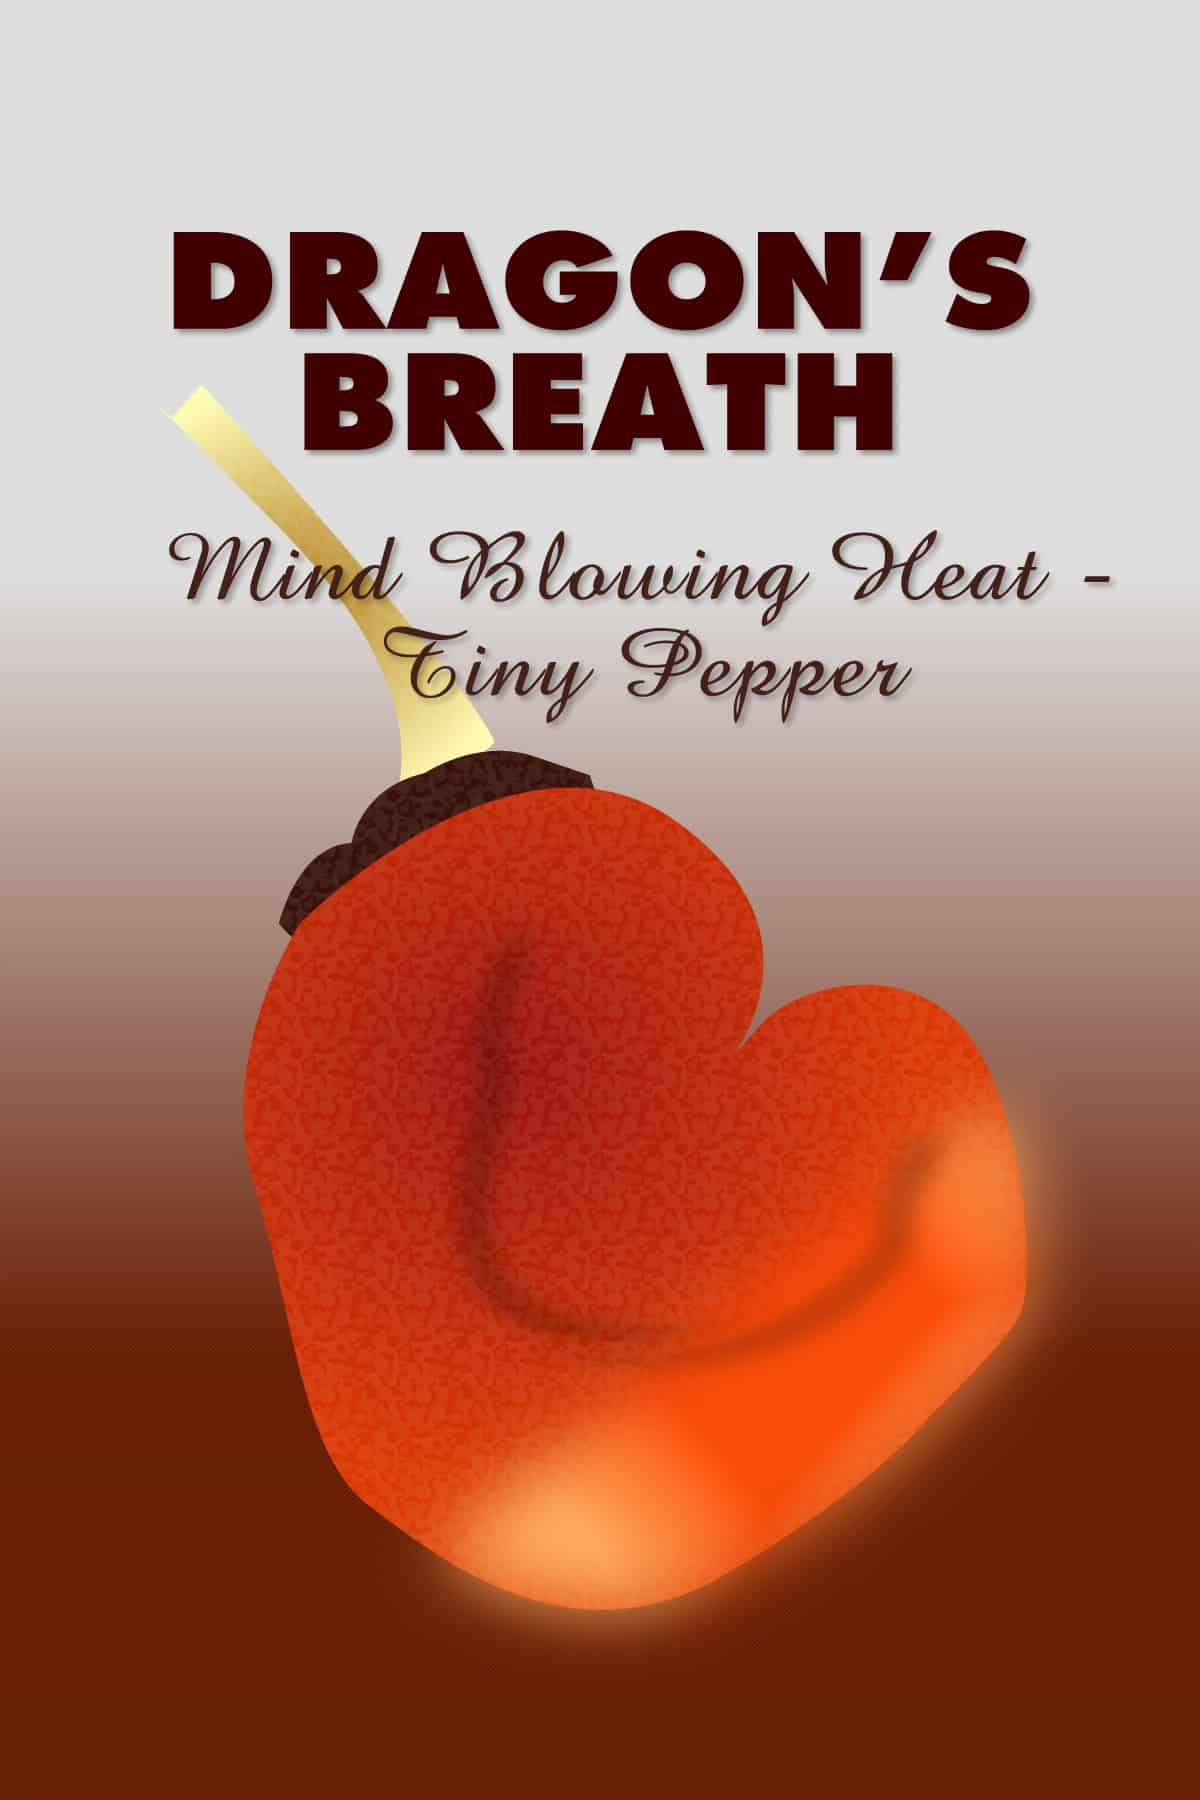 Dragon's Breath Pepper – Mind Blowing Heat, Tiny Pepper